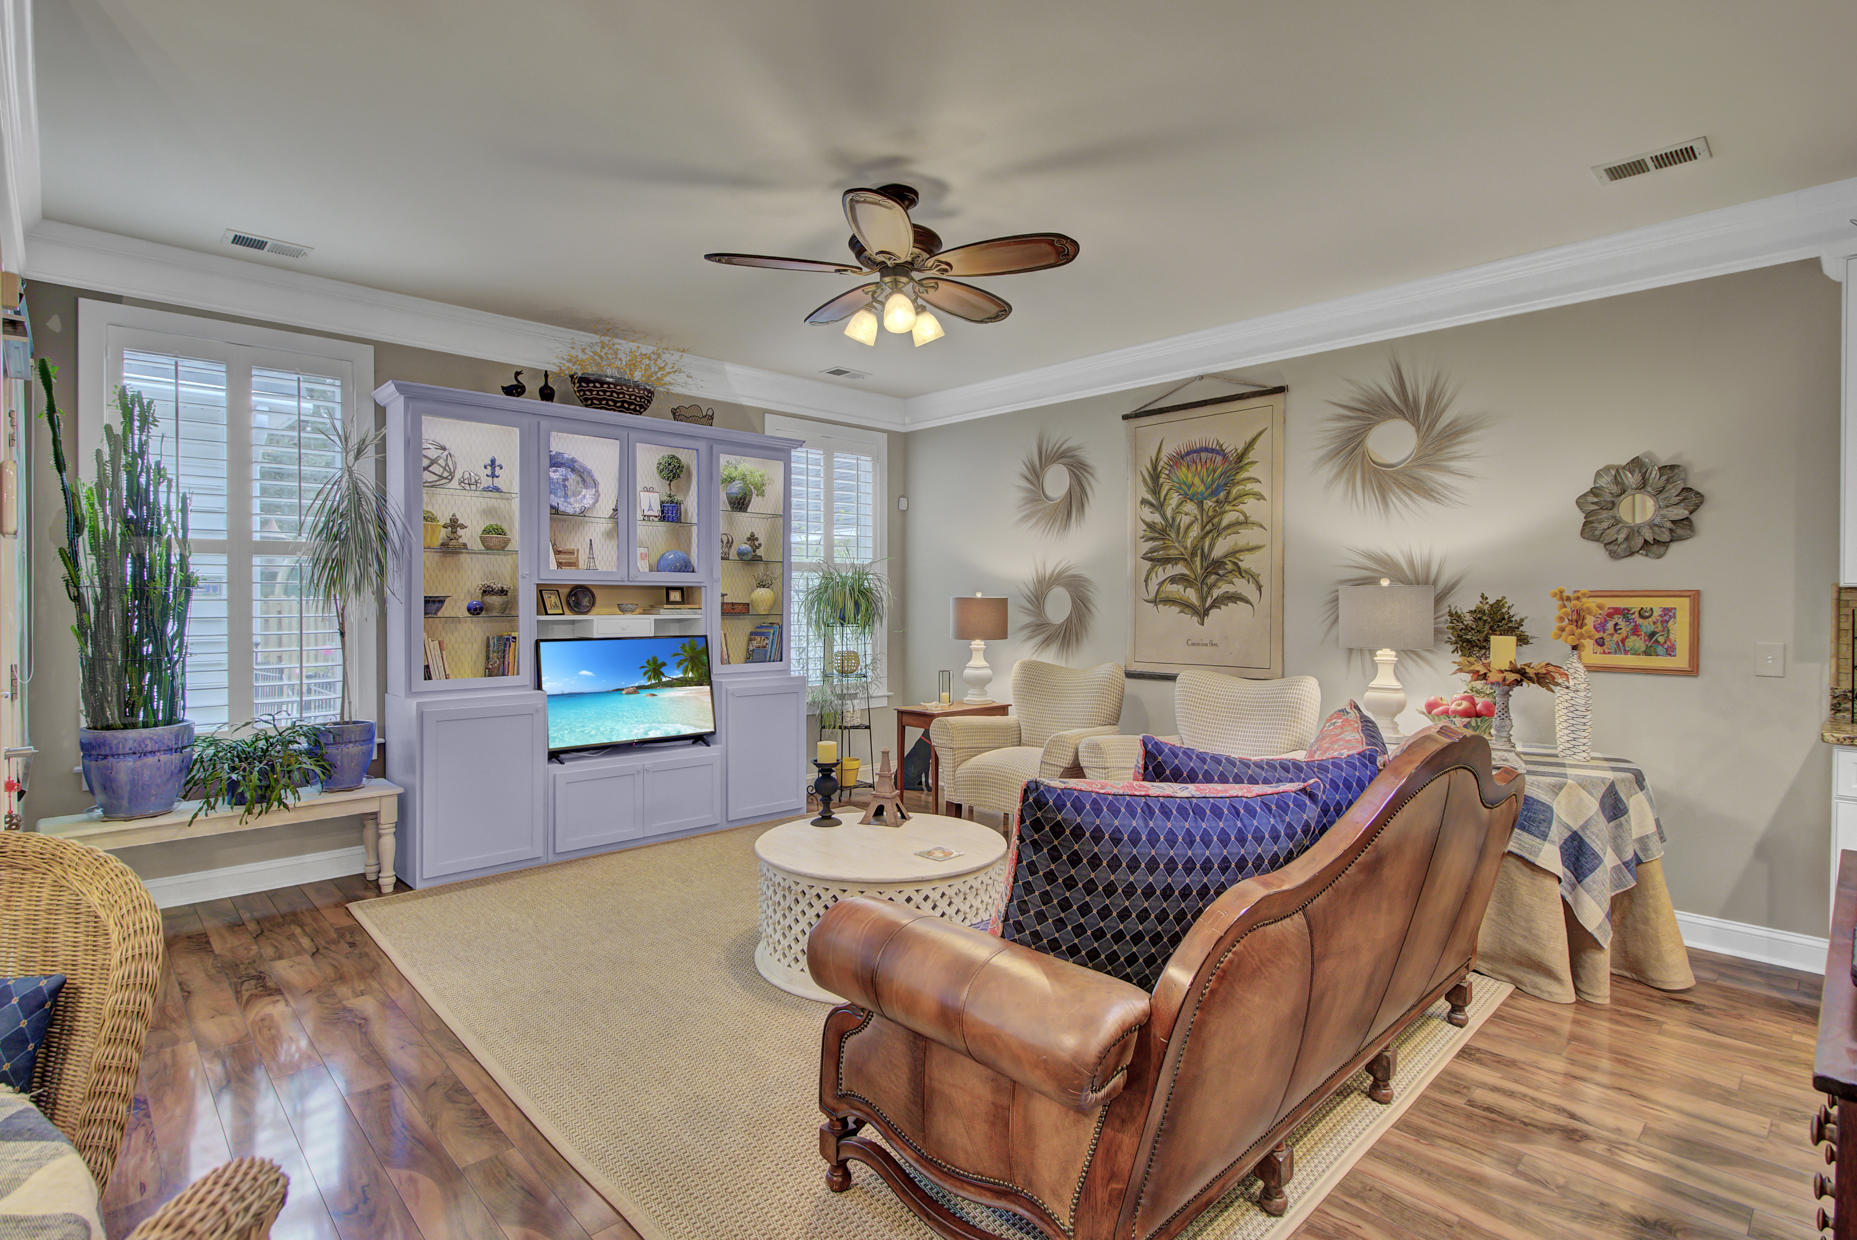 Boltons Landing Homes For Sale - 3034 Scuba, Charleston, SC - 24